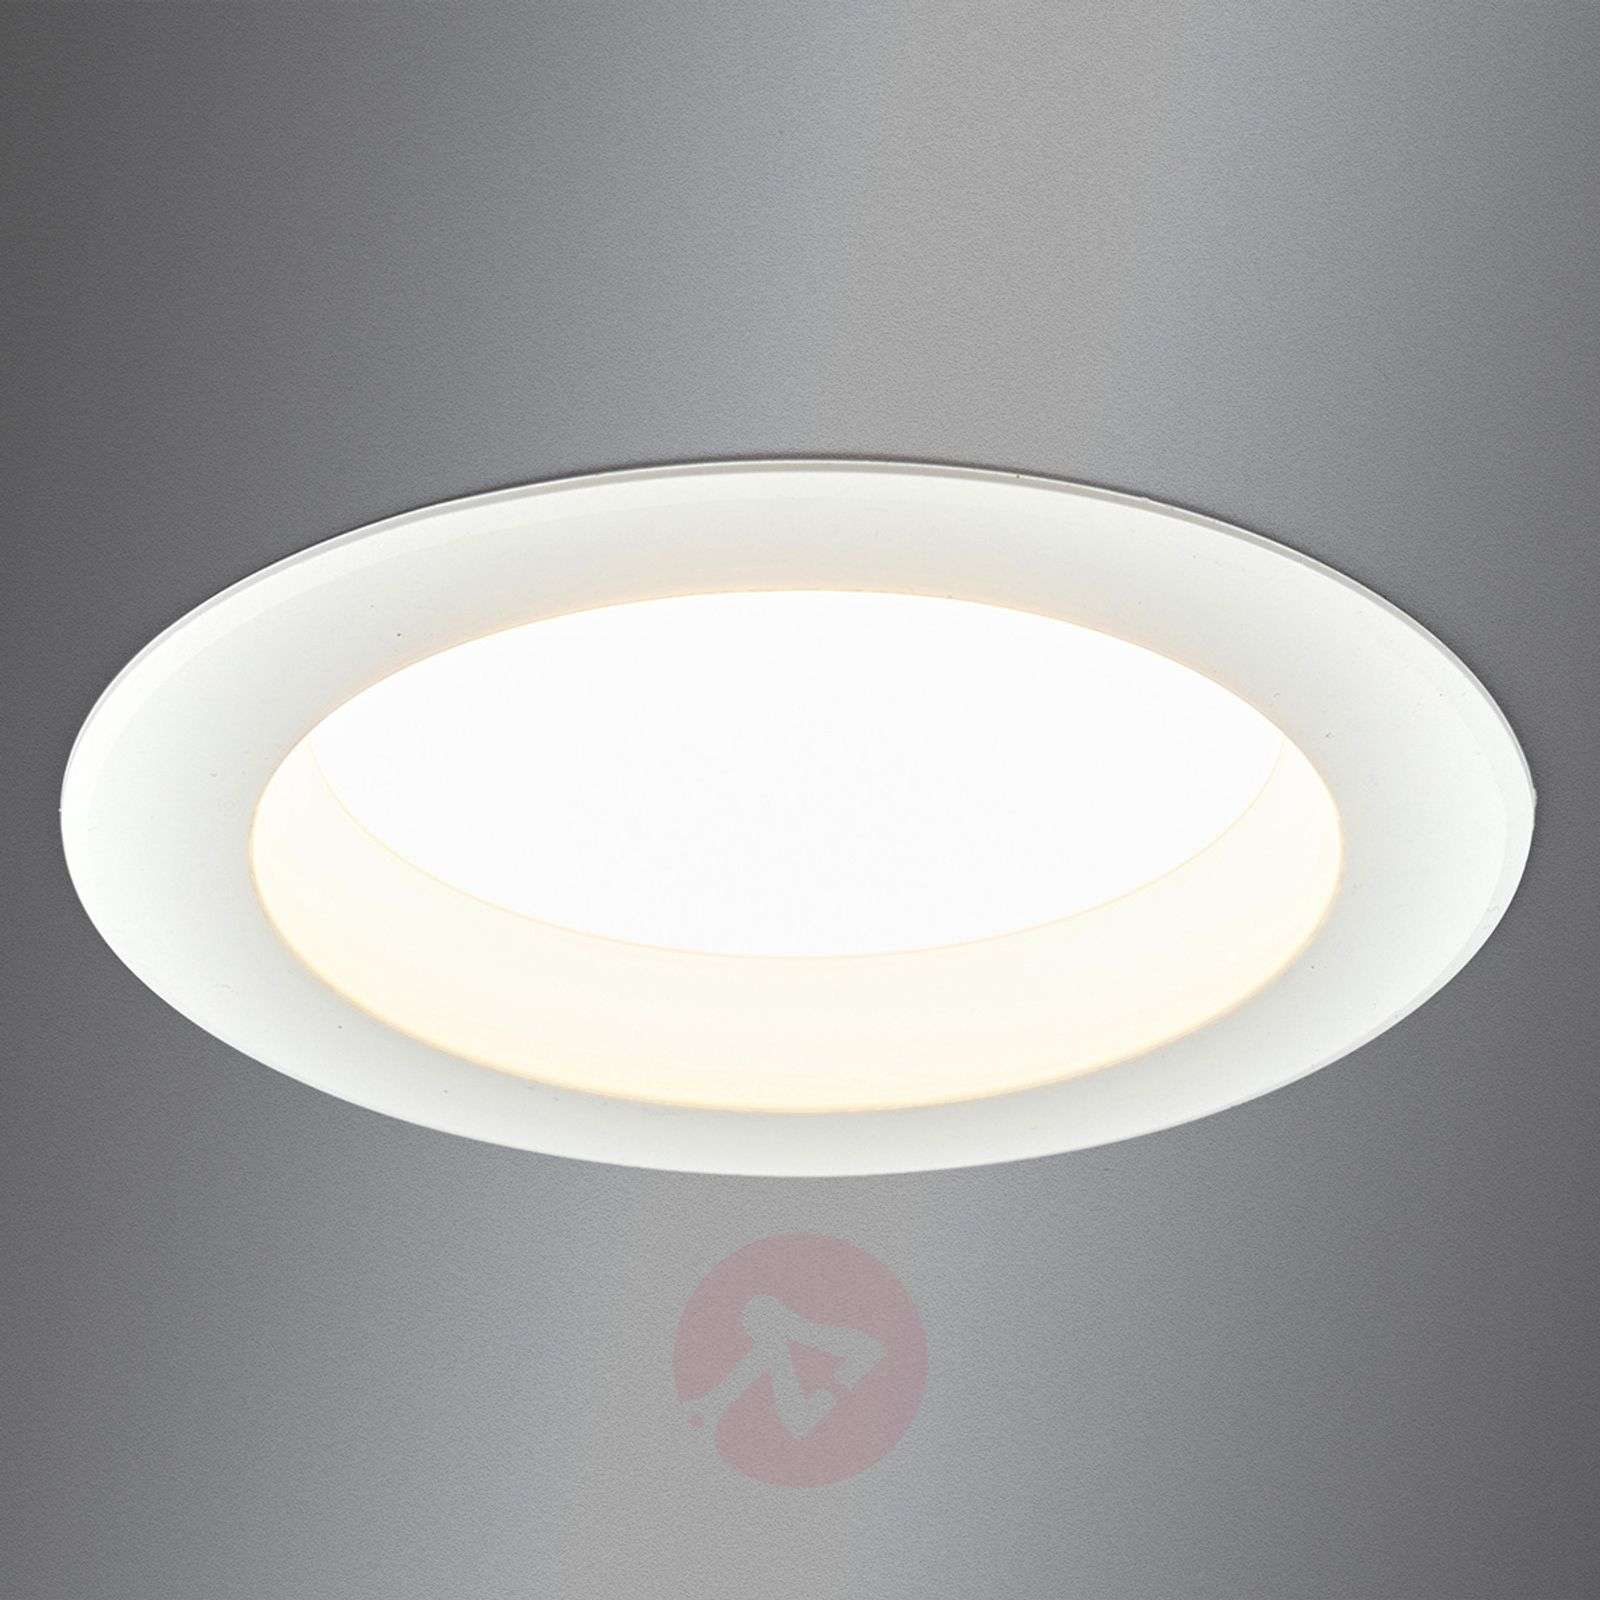 Bright LED recessed light Arian, 14.5 cm, 12.5 W-9978010-03